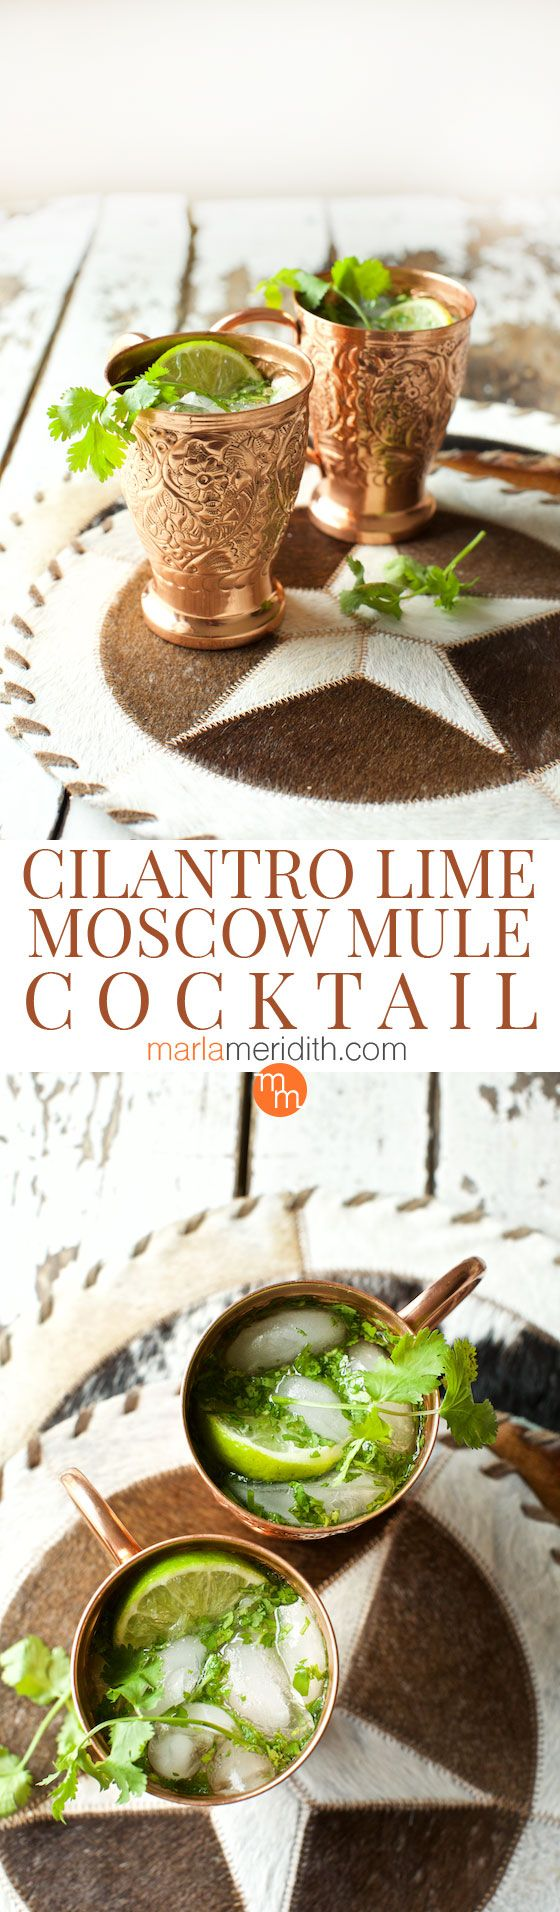 Cilantro Lime Moscow Mule Cocktail recipe, a refreshing drink for Cinco de Mayo & backyard BBQ's. MarlaMeridith.com ( @marlameridith )